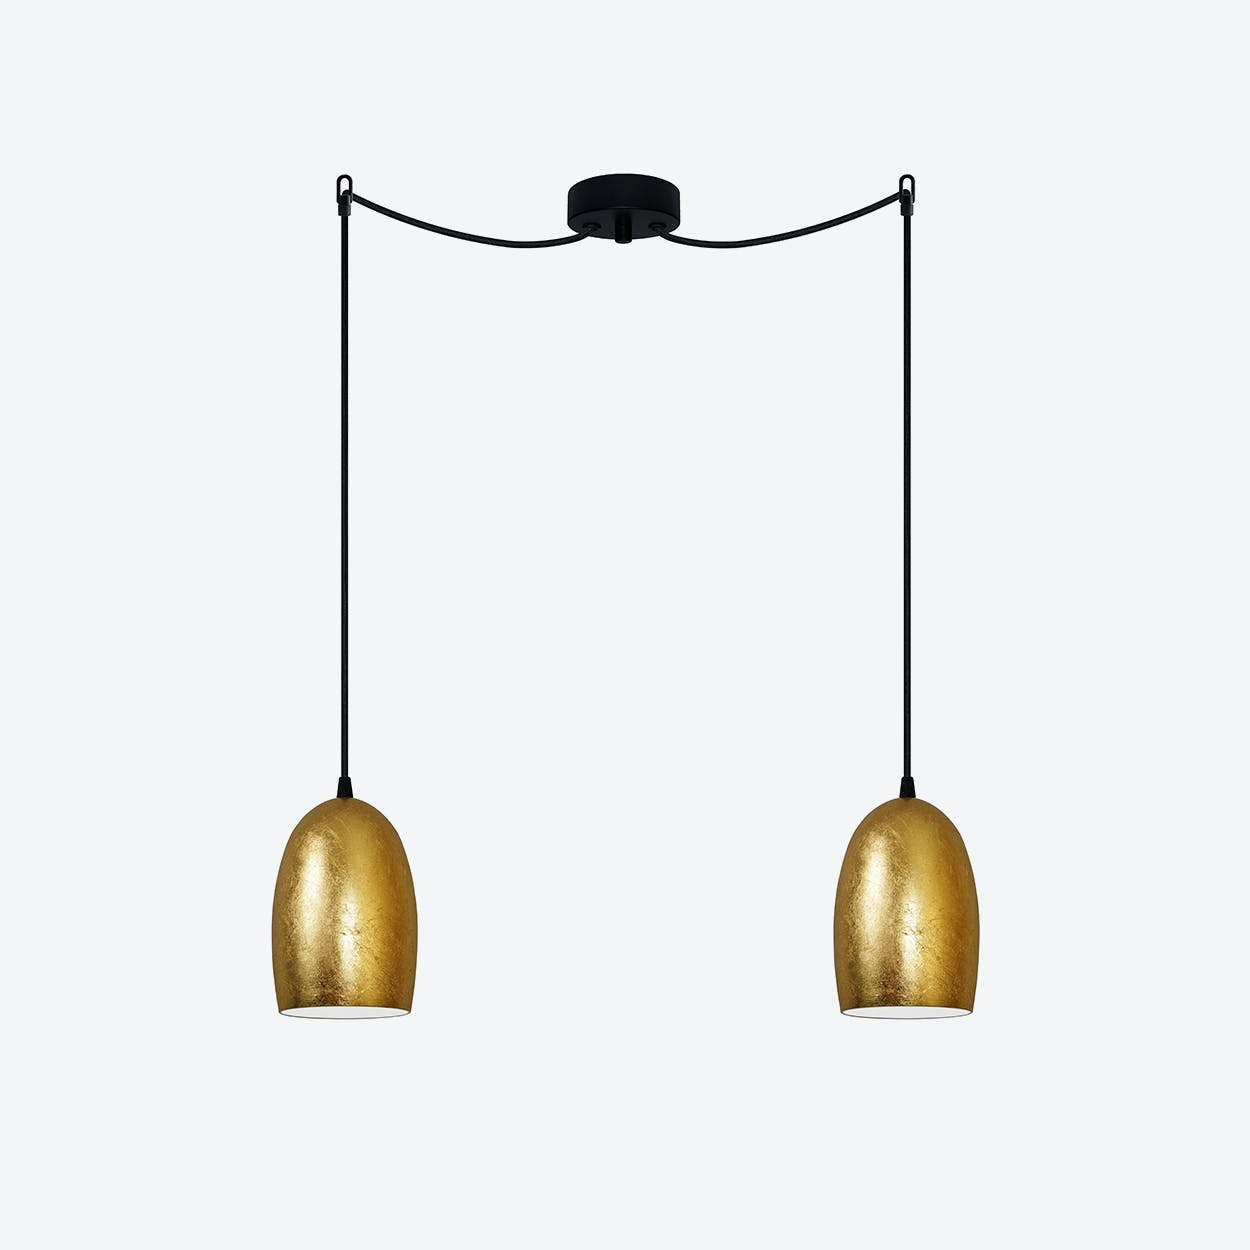 UME Double Pendant Light in Gold Leaf